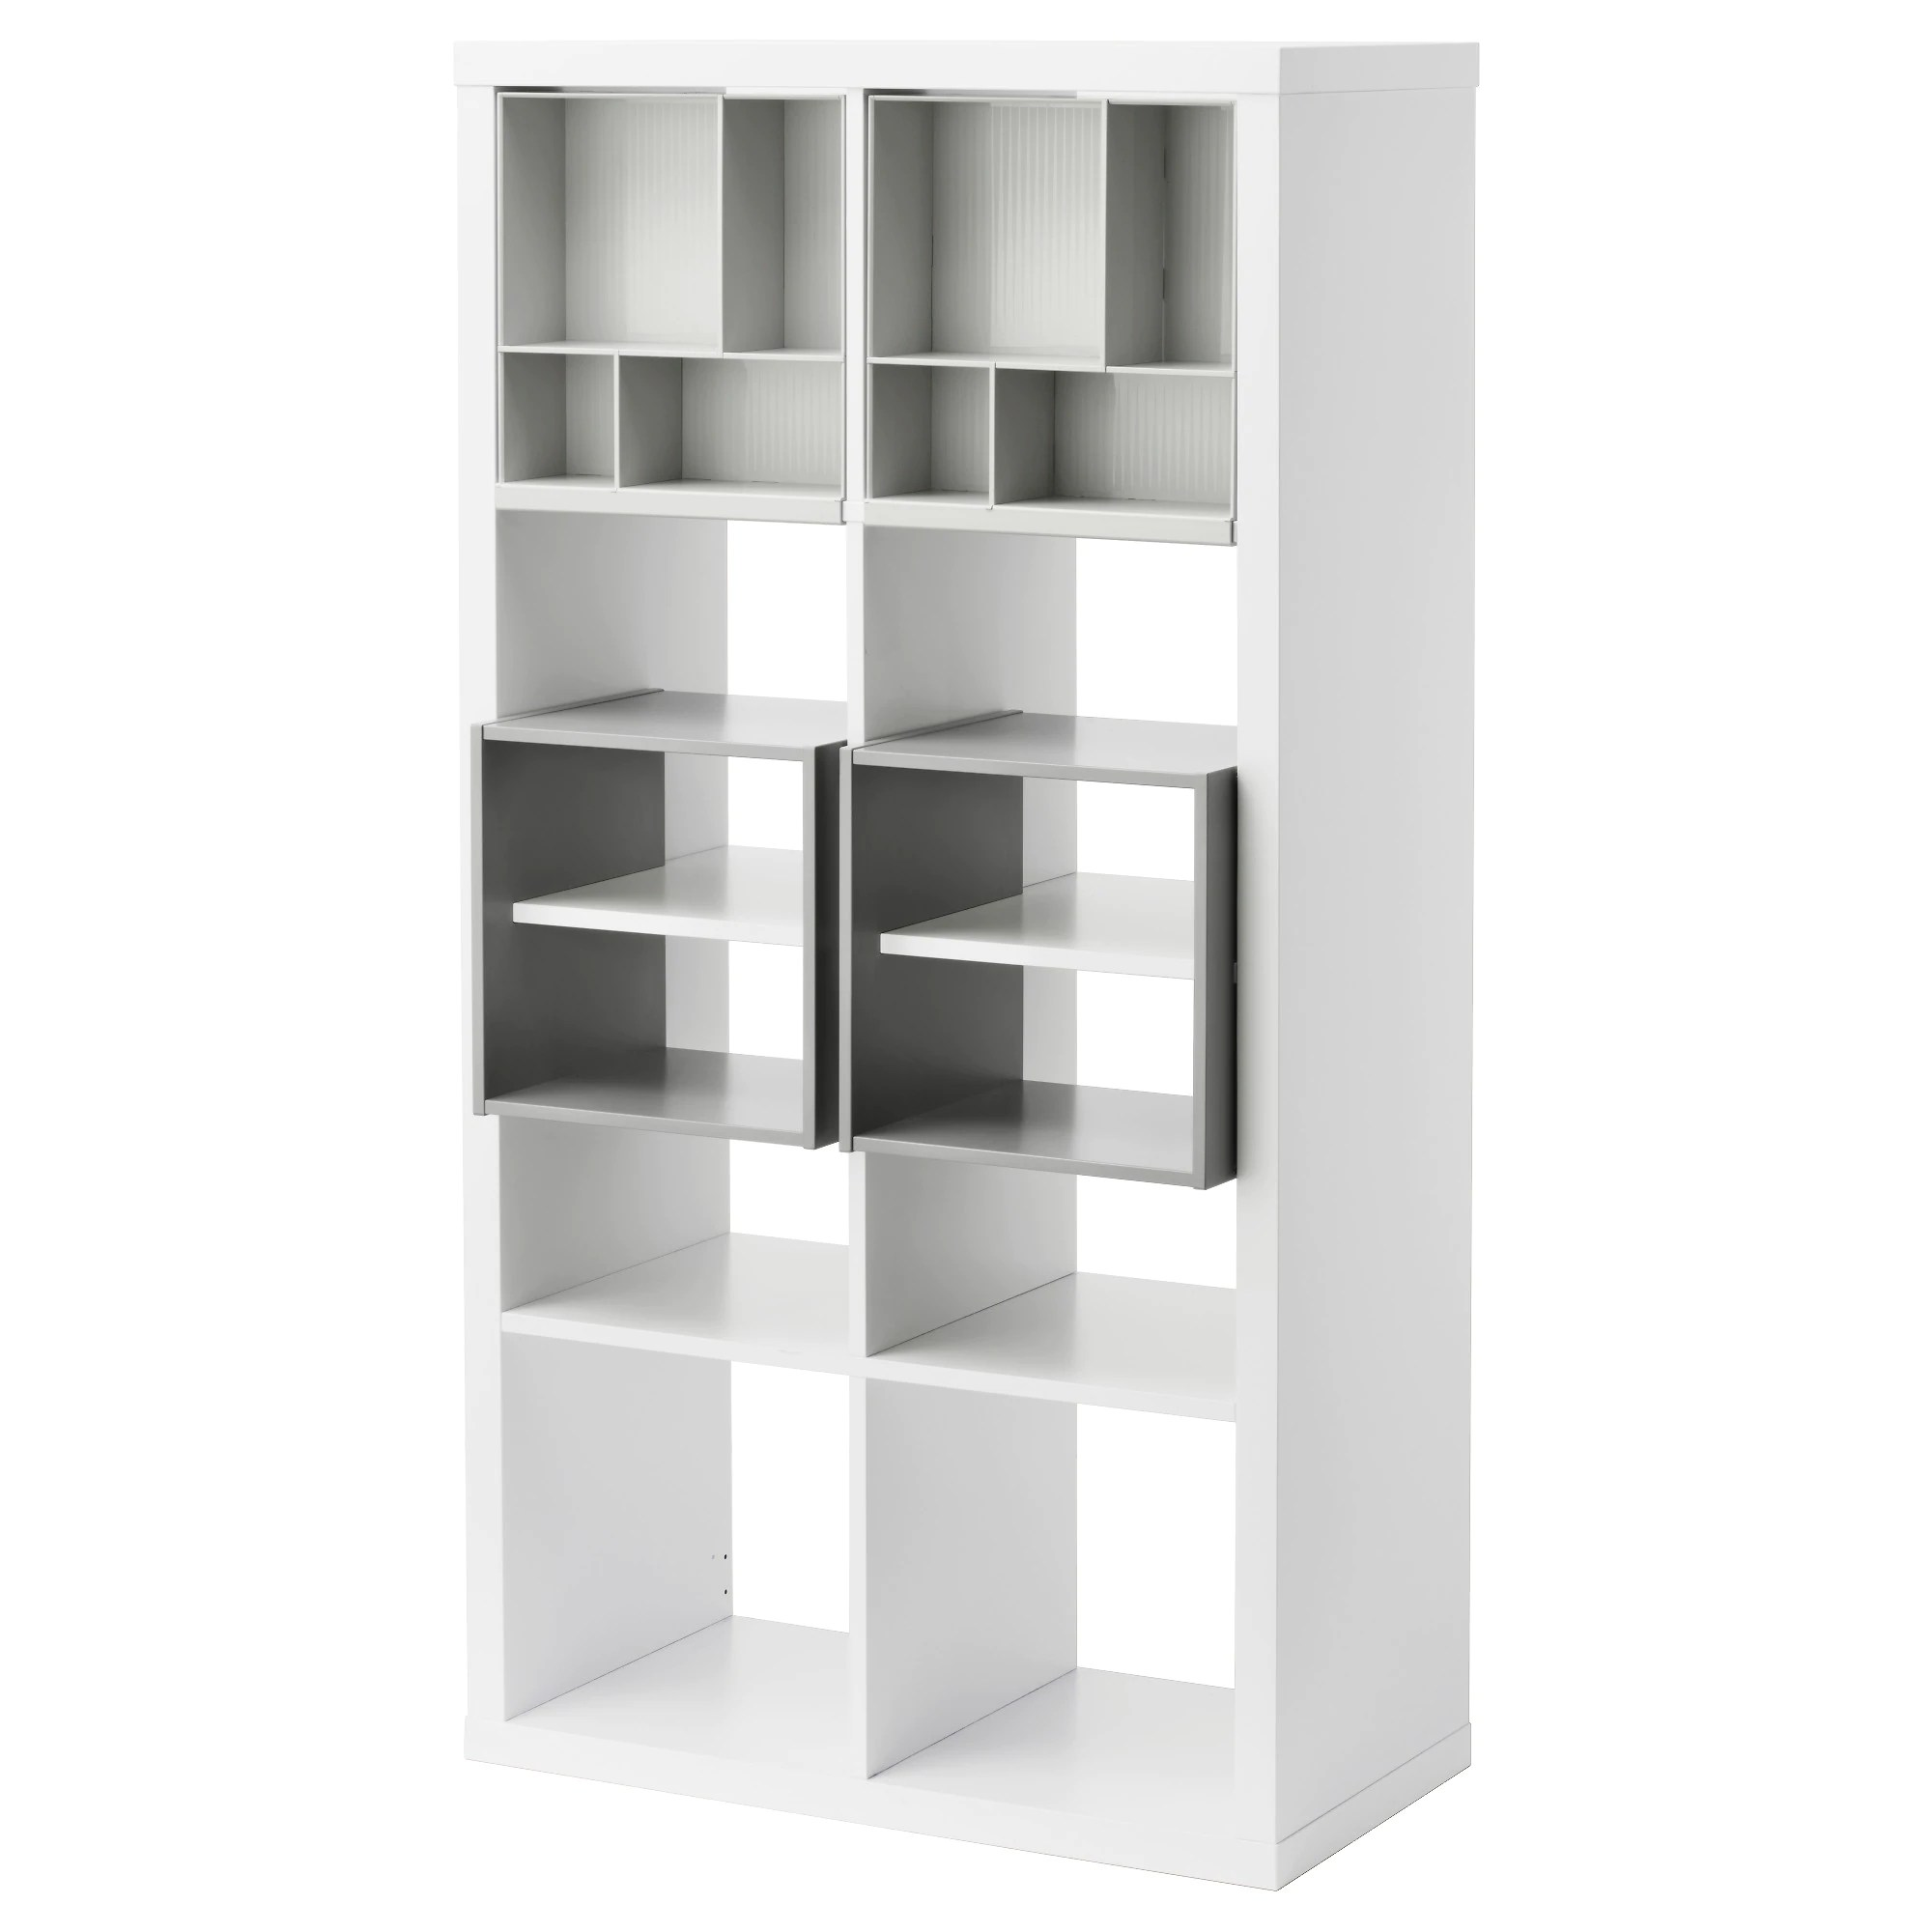 Ikea Kallax Kallax Shelf Unit With 4 Inserts White